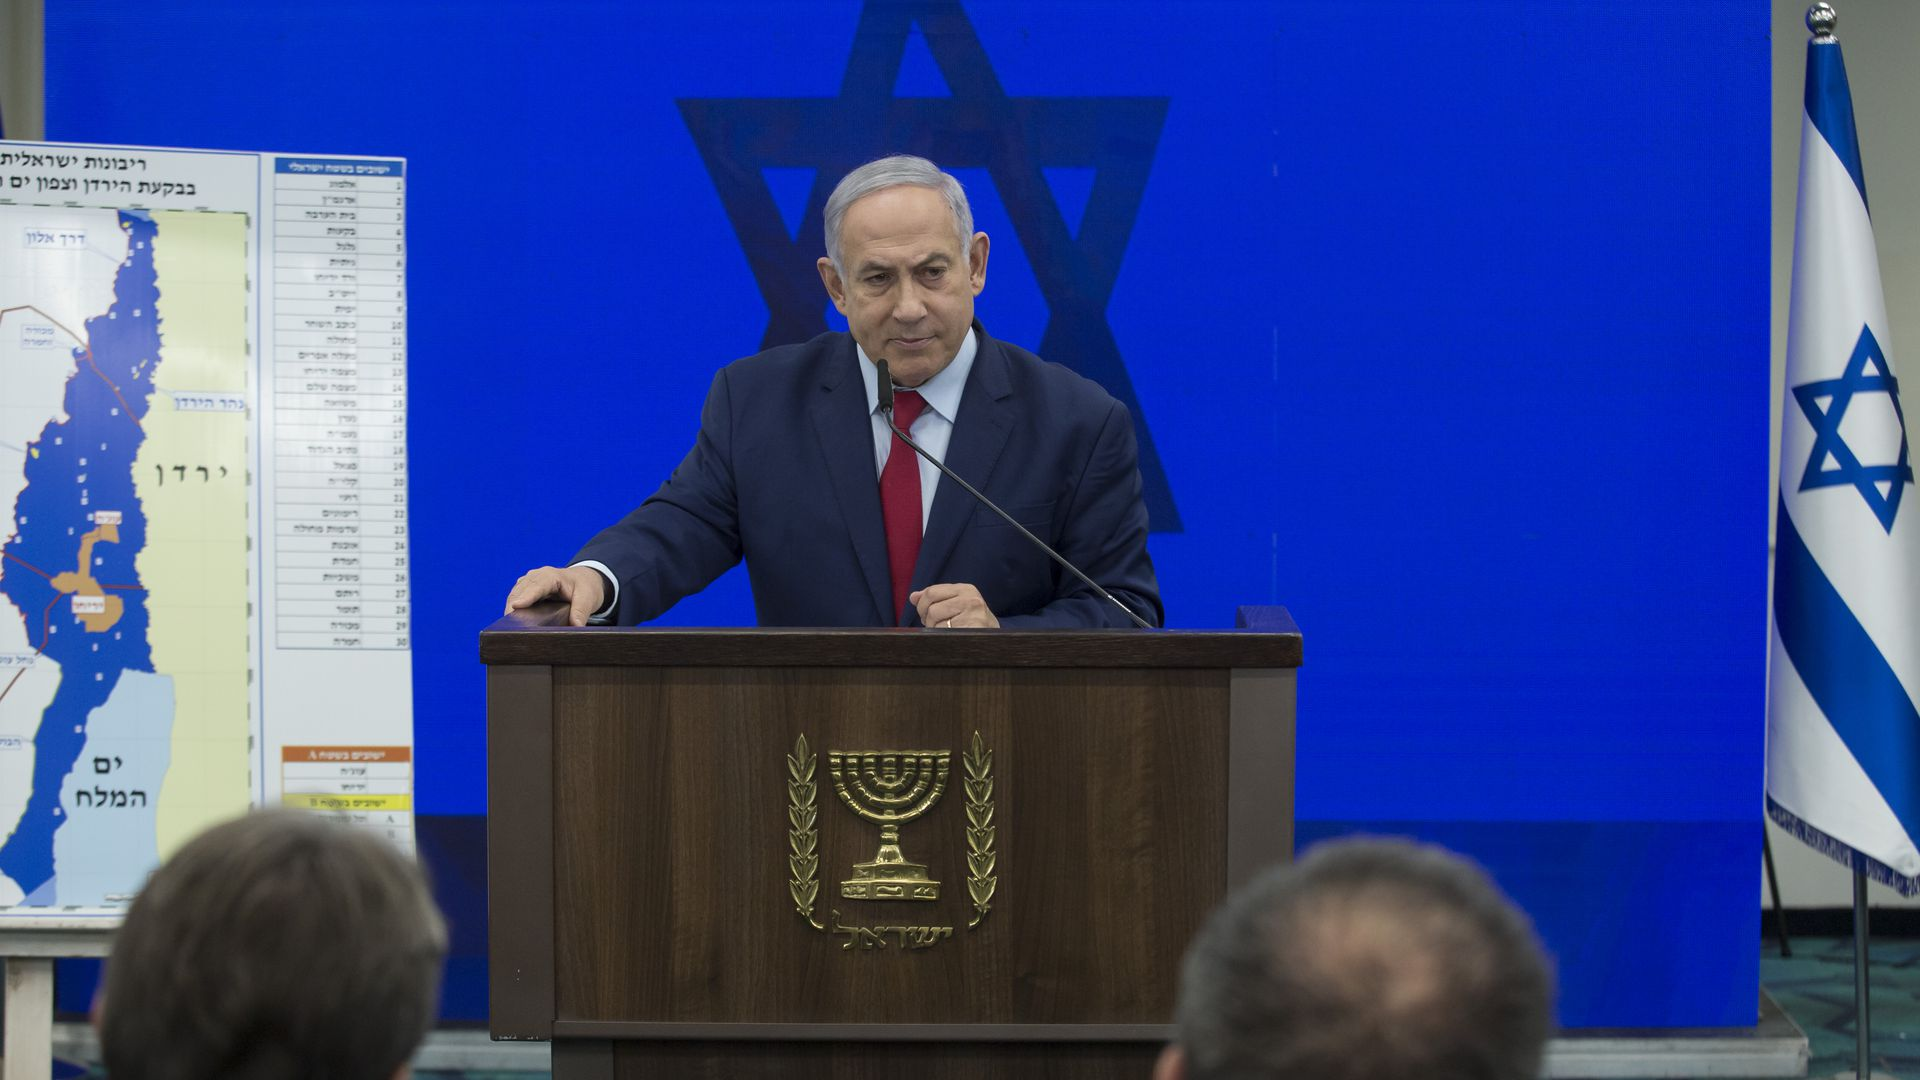 Benjamin Netanyahu stands at a podium to announce annexation plans.